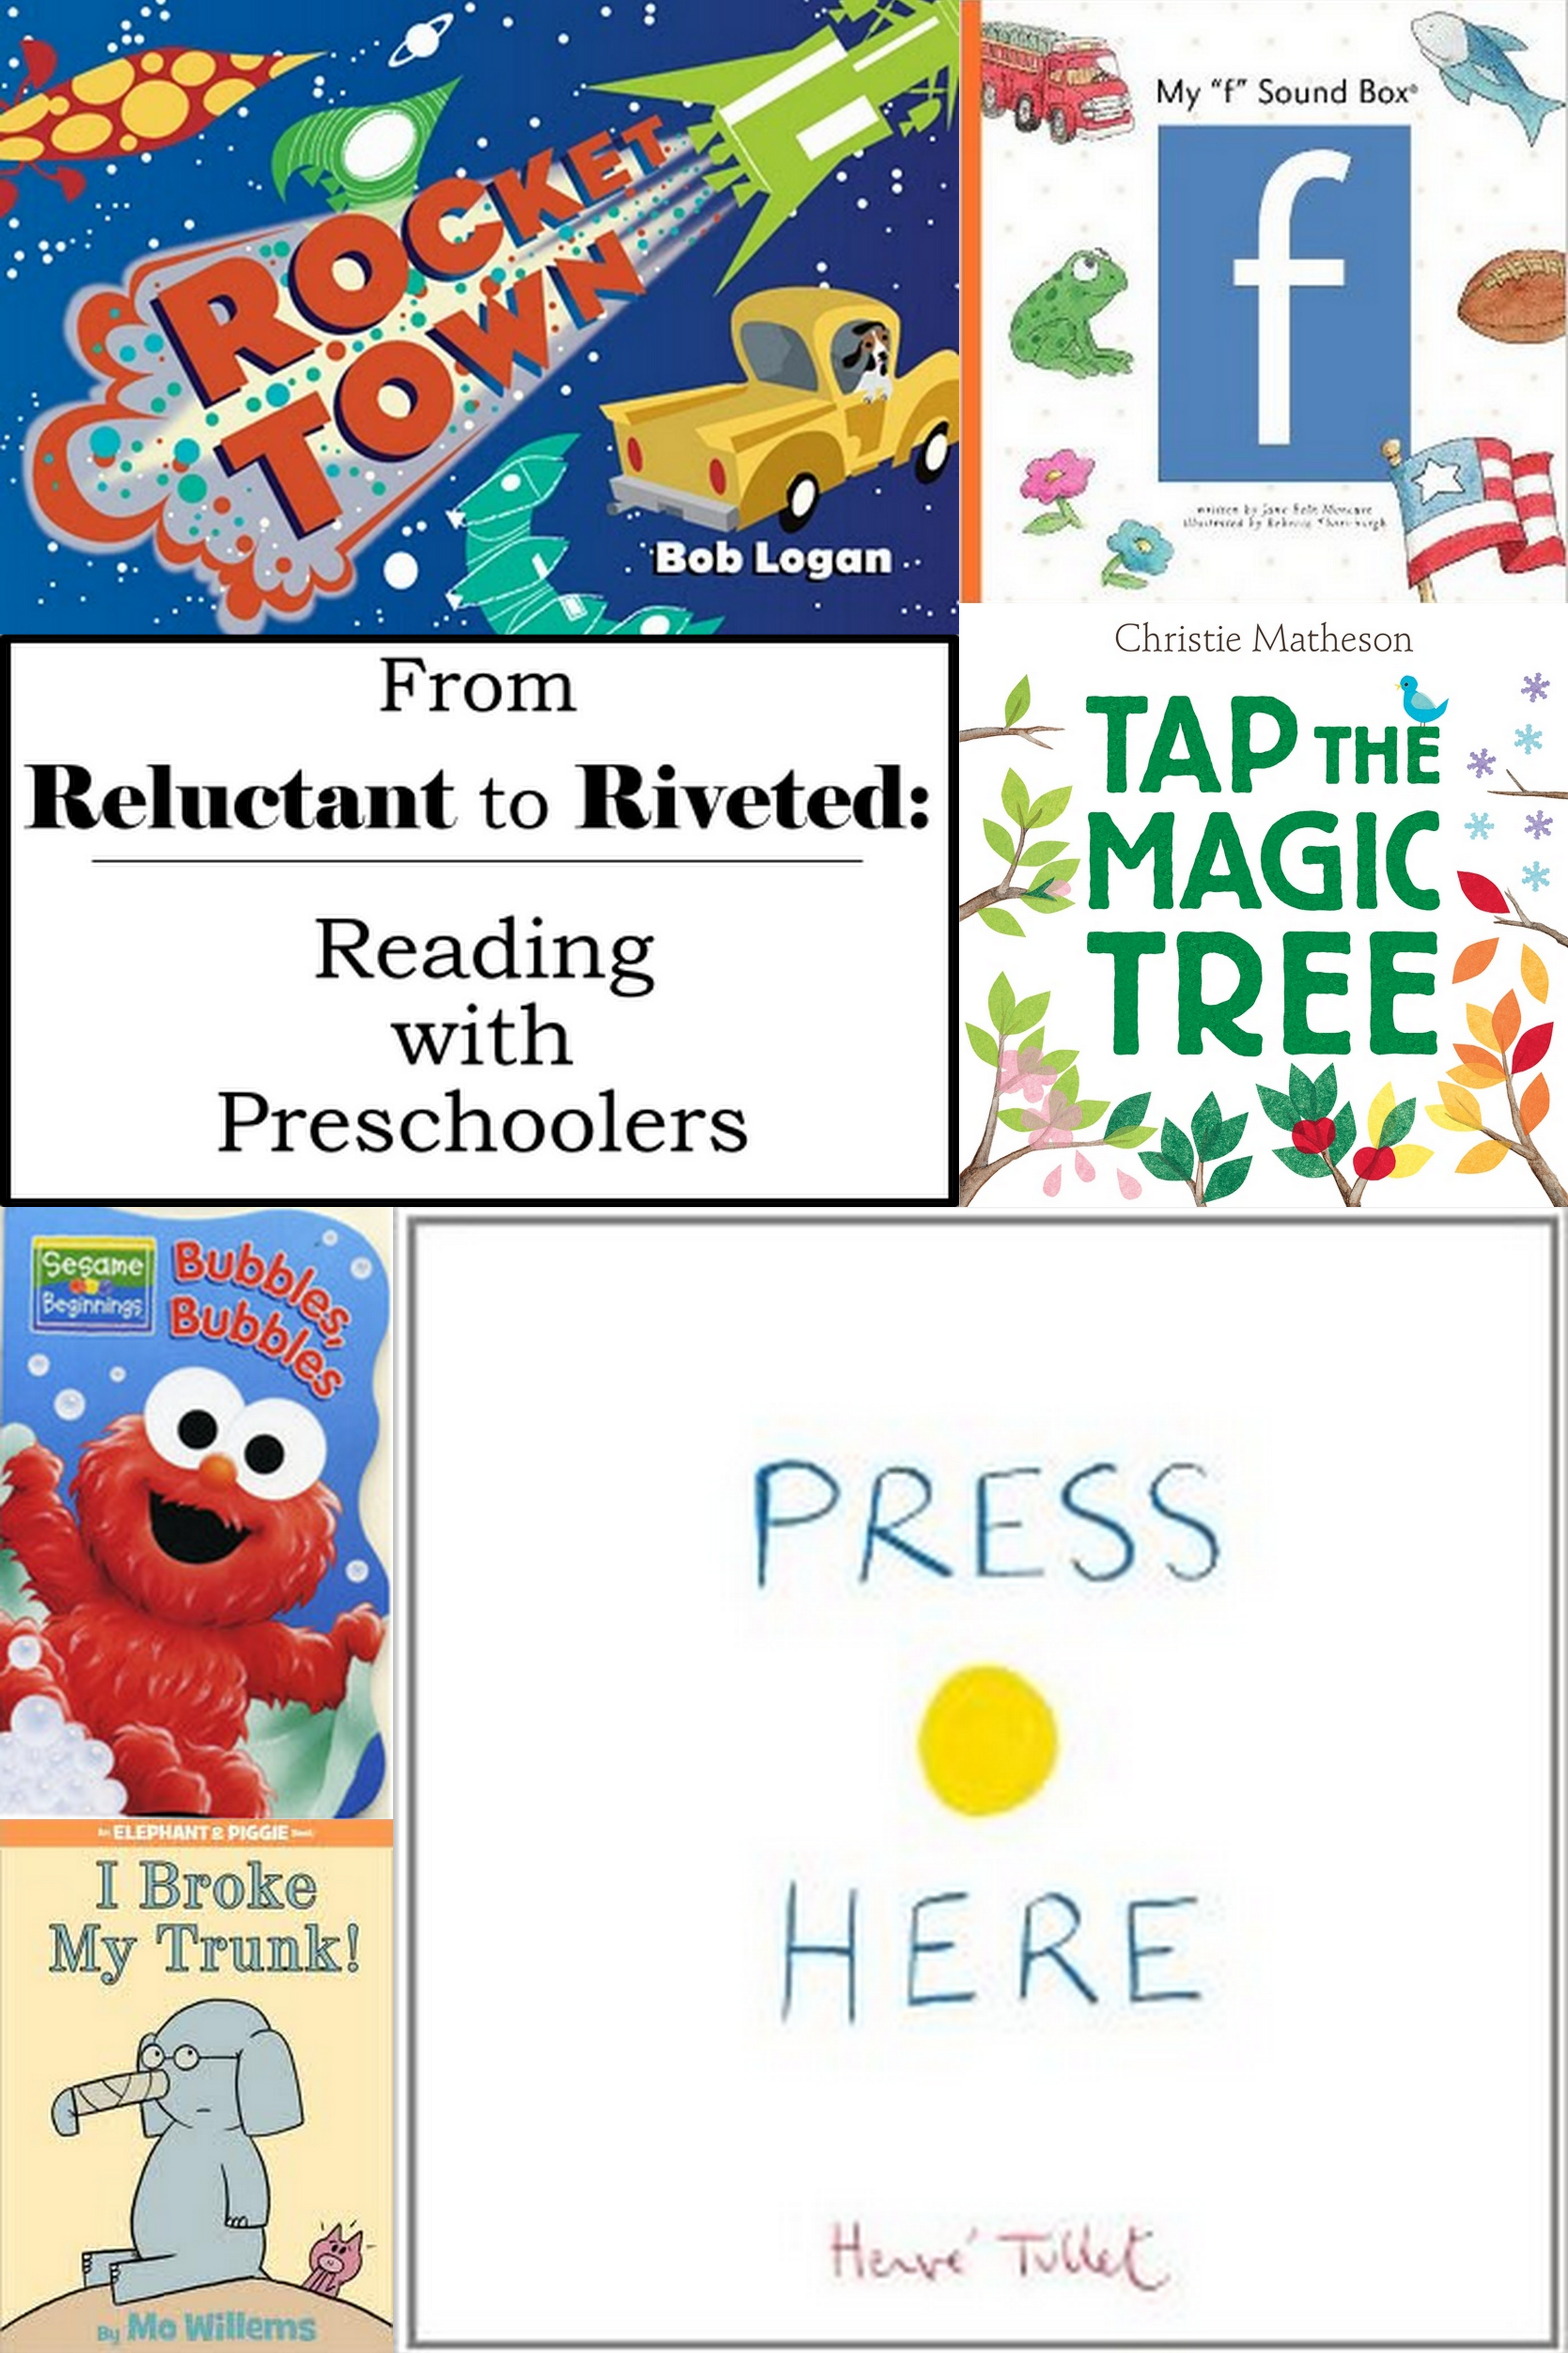 5 must-read books for preschoolers